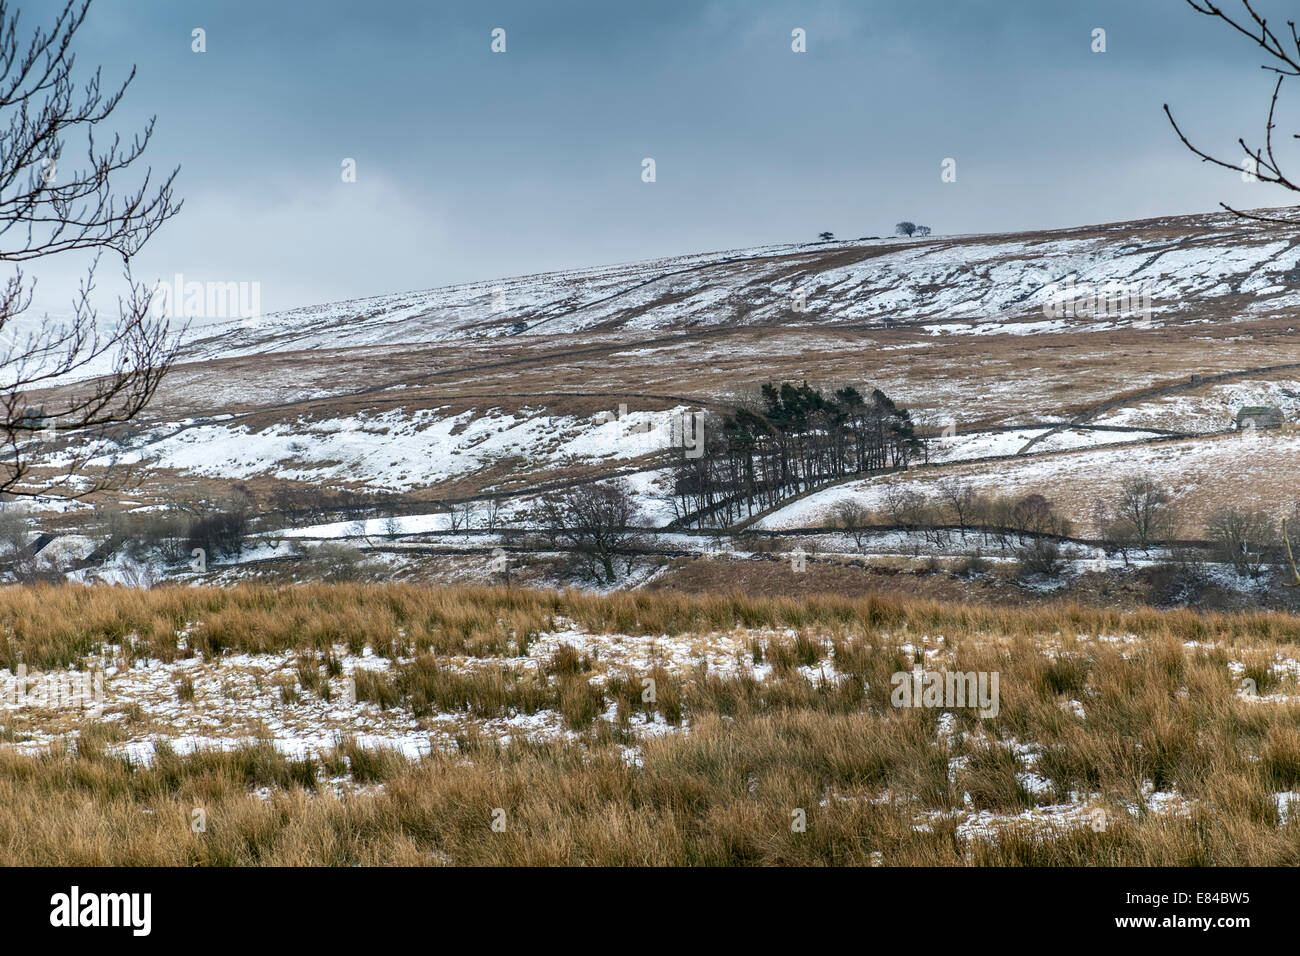 Snowy bleak view over Yorkshire Dales, England - Stock Image